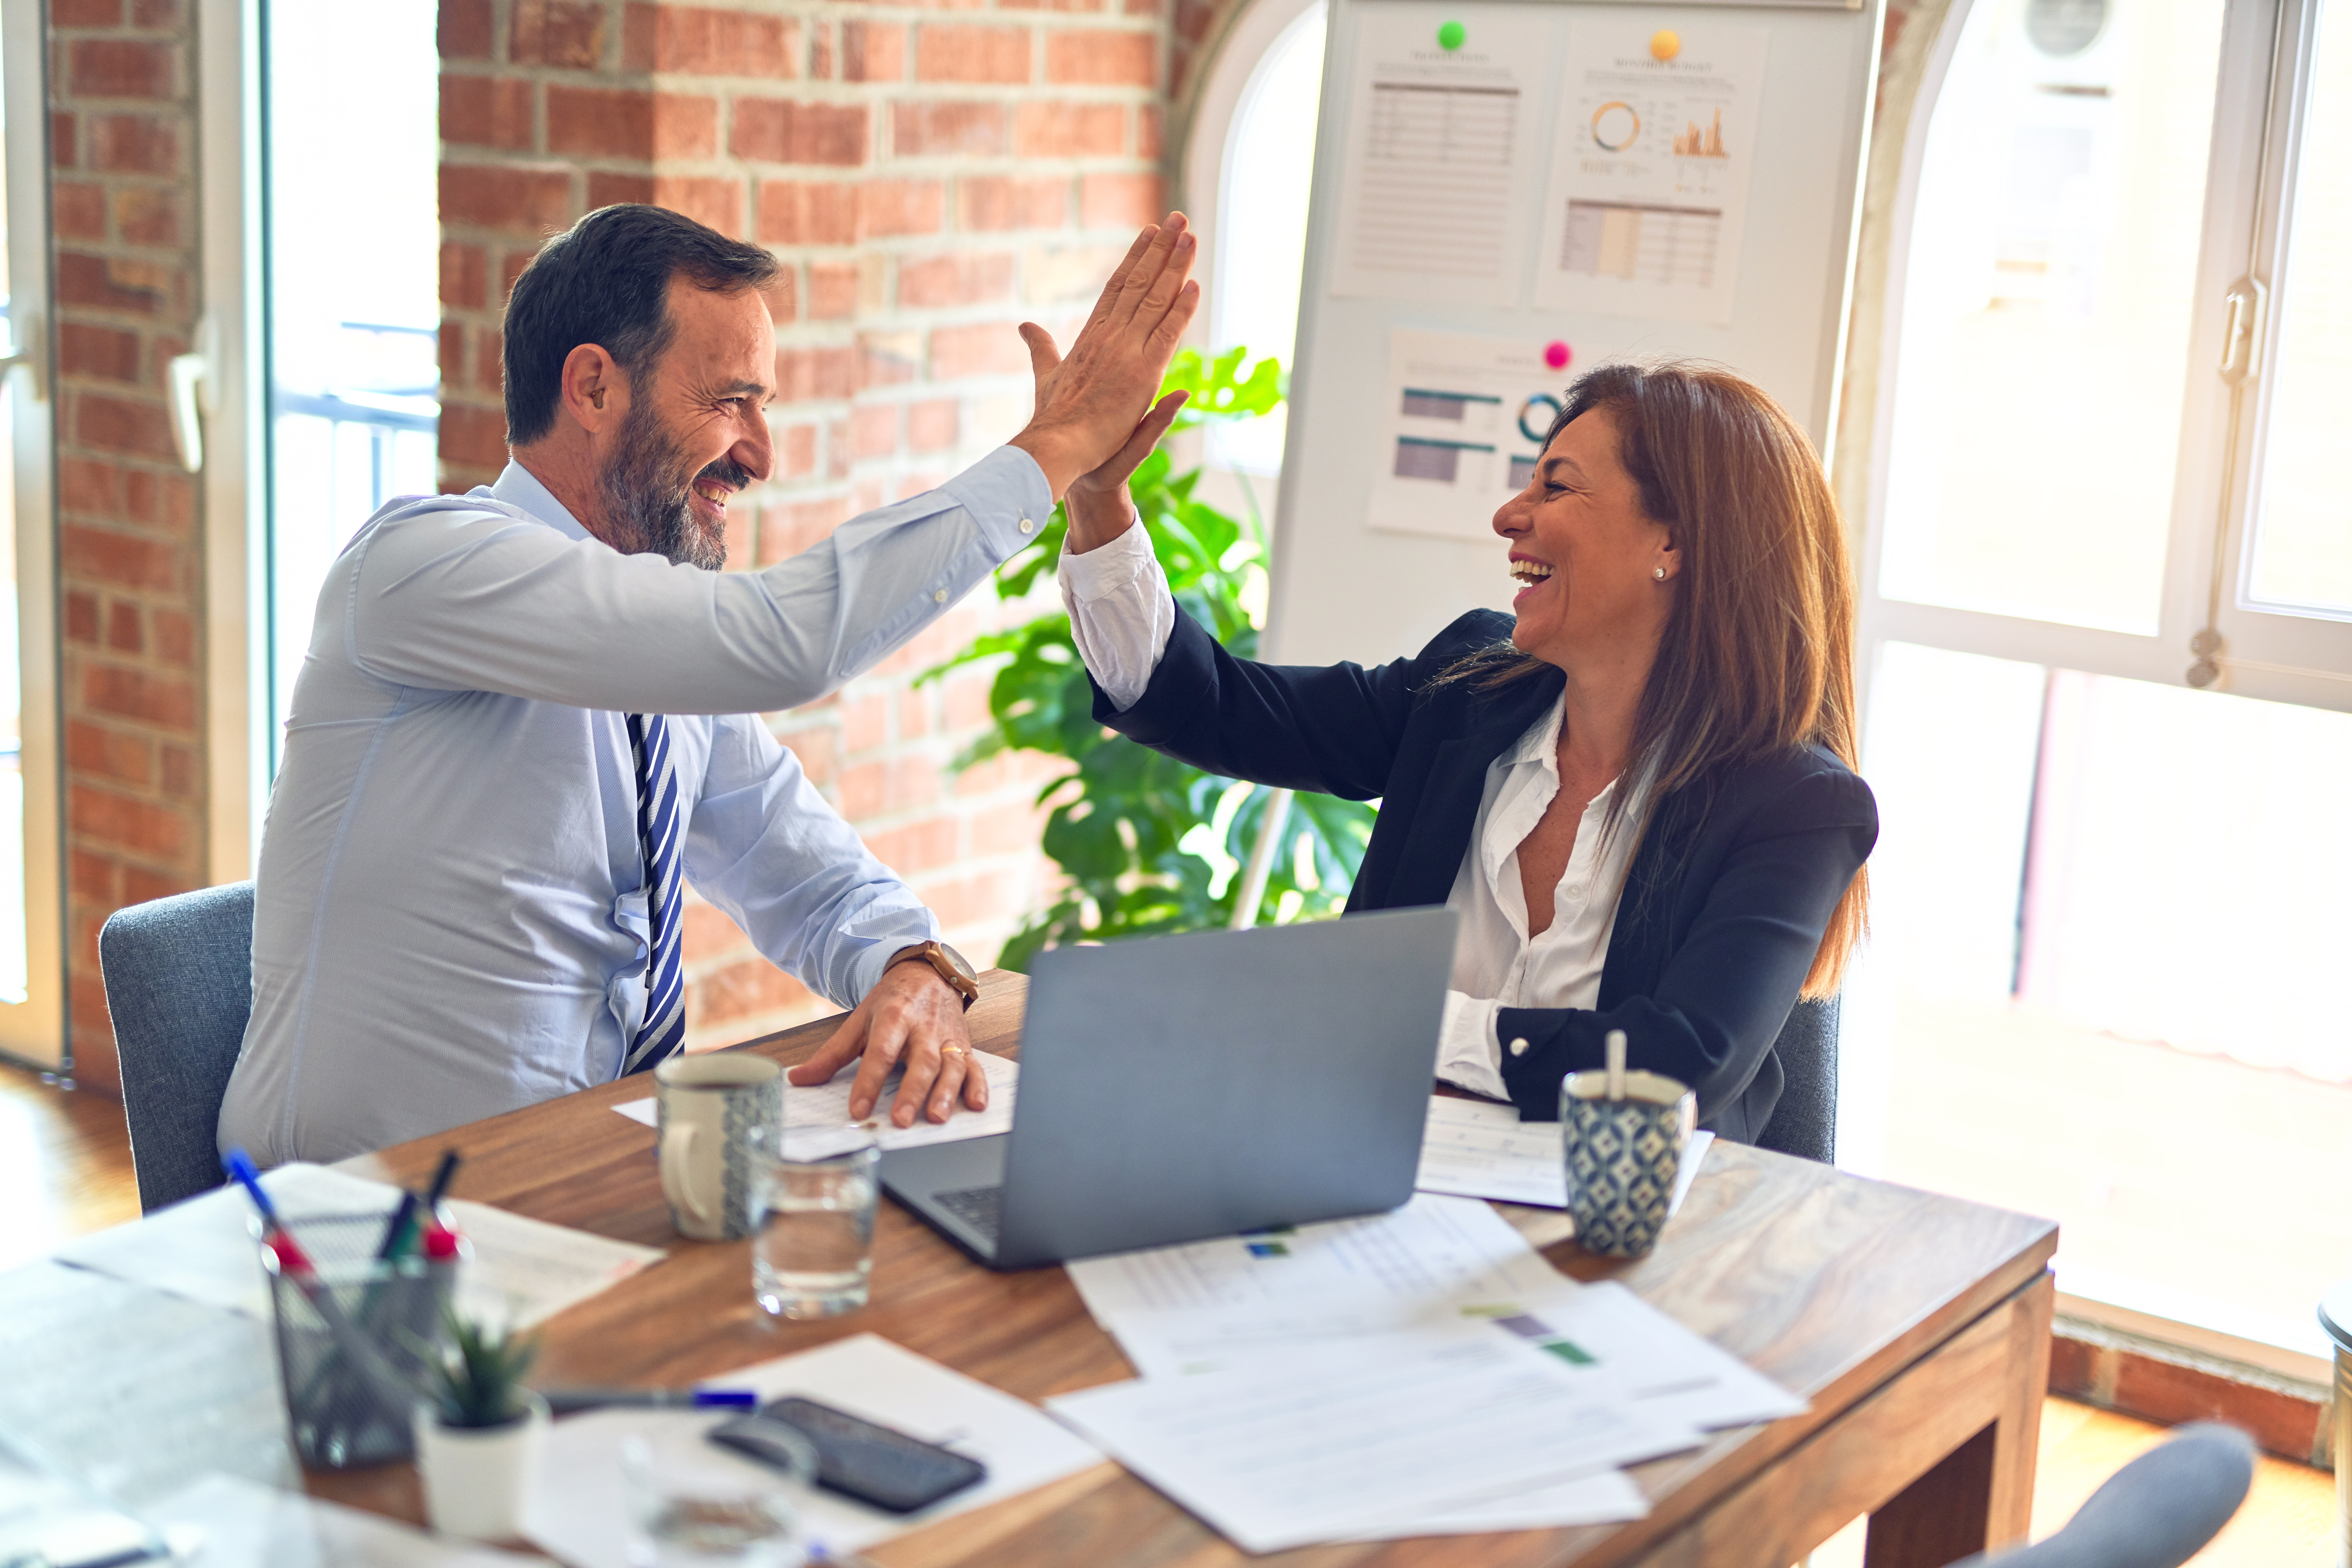 Two co-workers exchanging a high-five while working at desk | Global agency, BCD Meetings & Events